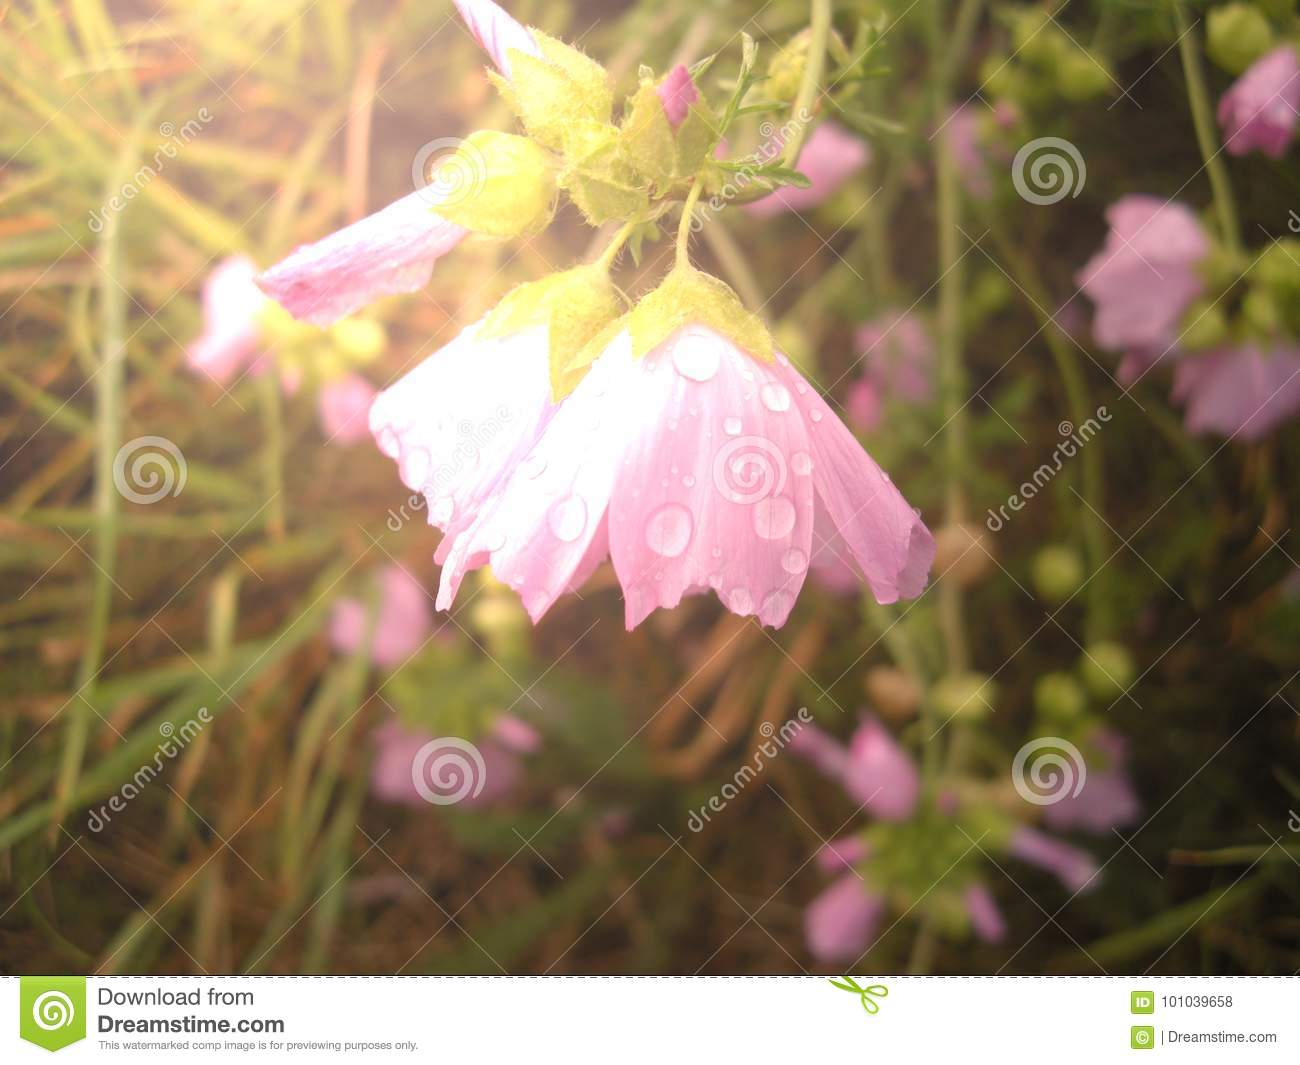 Purple flower with water drops, relaxing nature.